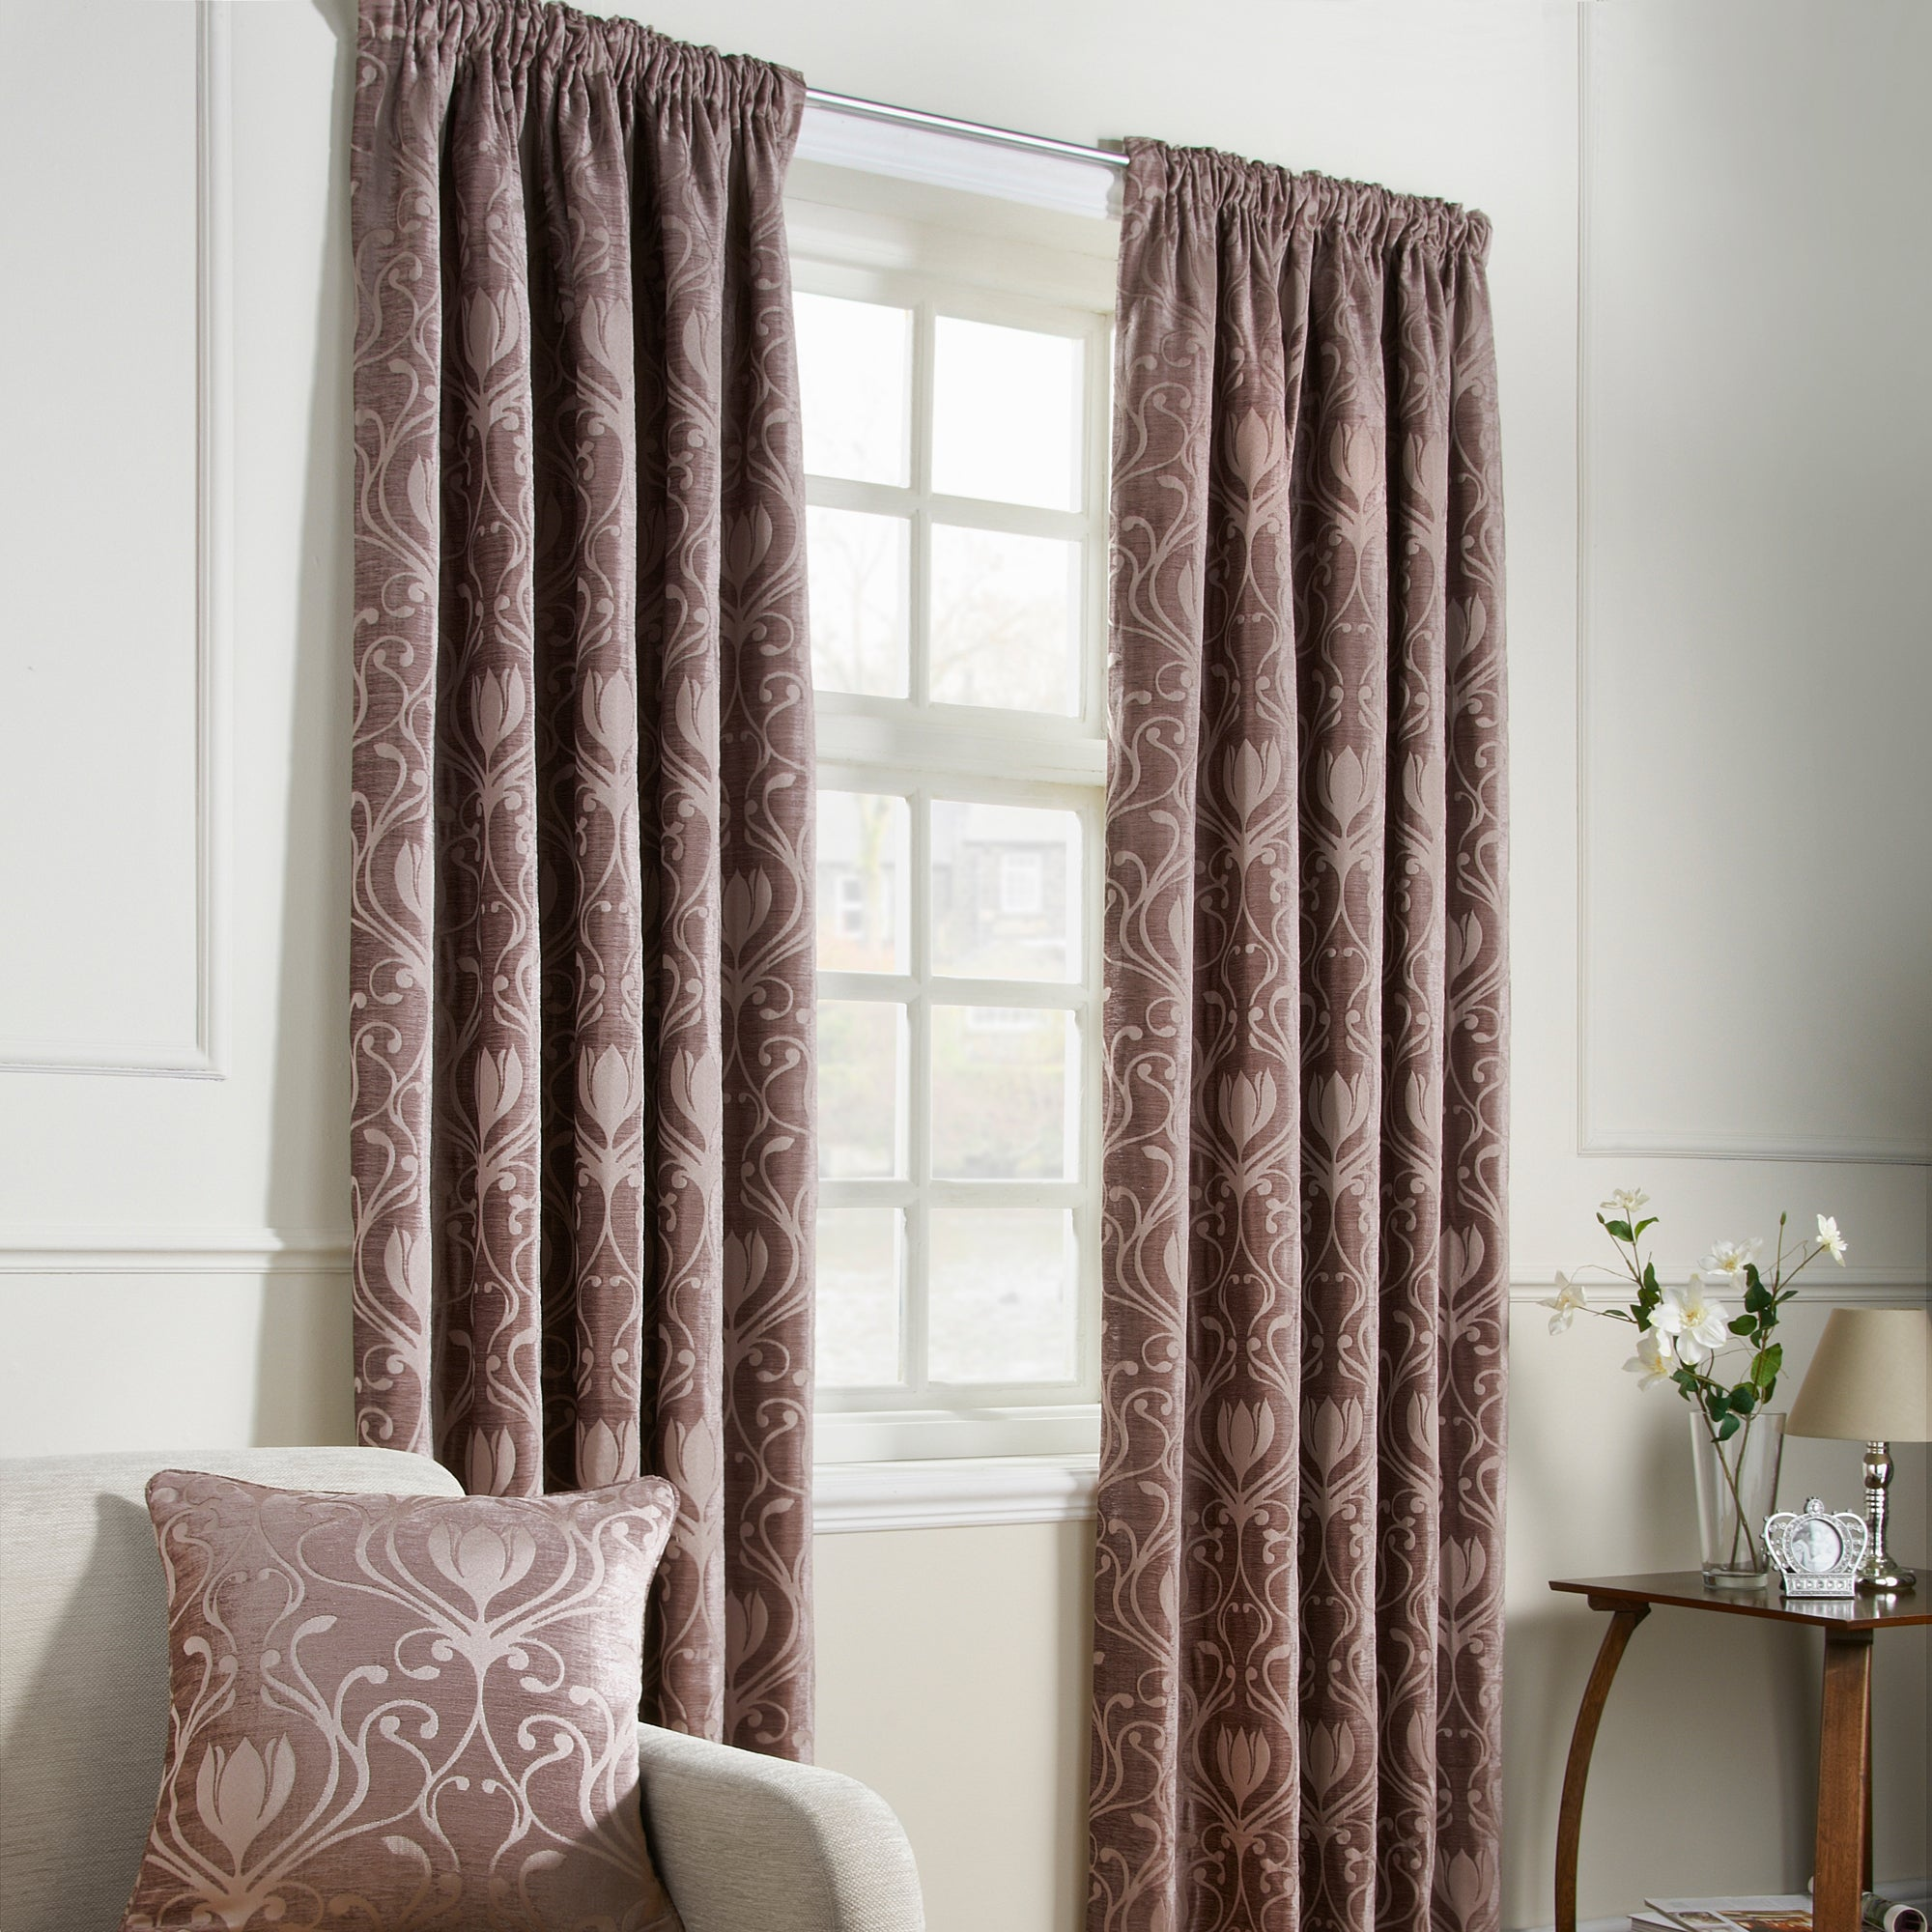 Mink Deco Lined Pencil Pleat Curtains